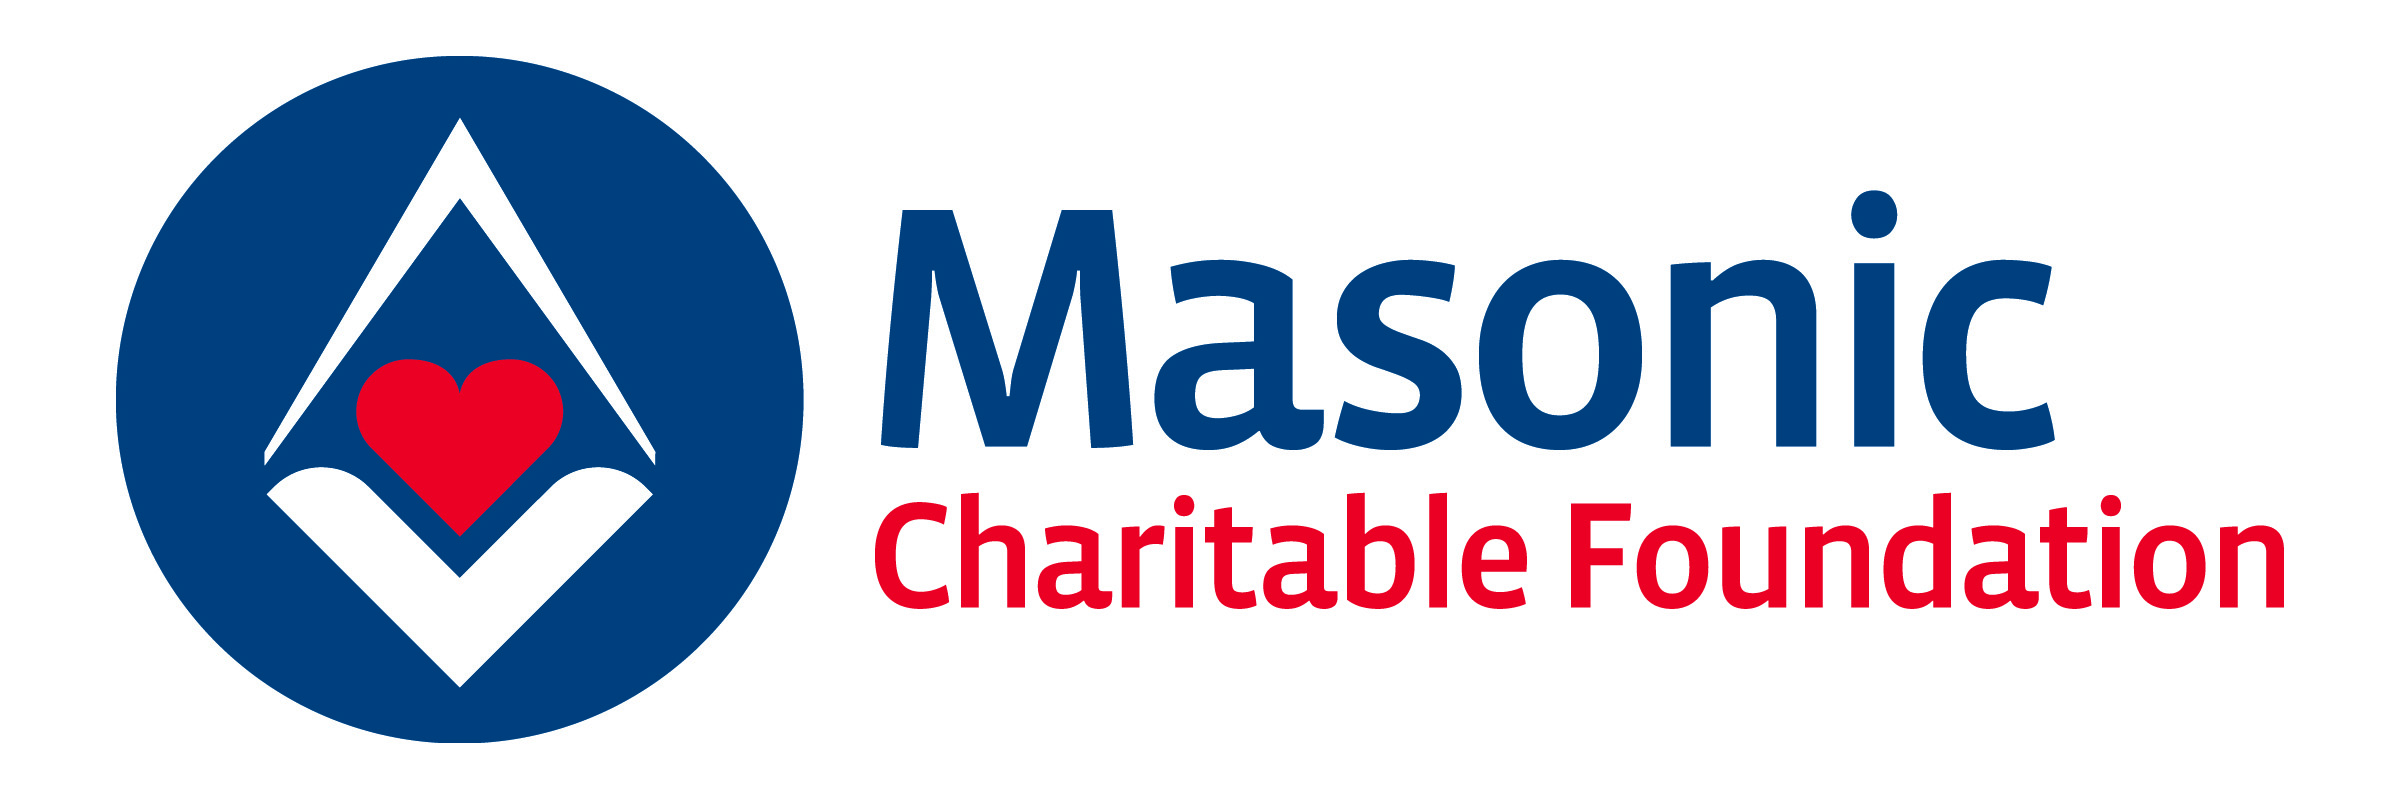 The Masonic Charitable Foundation